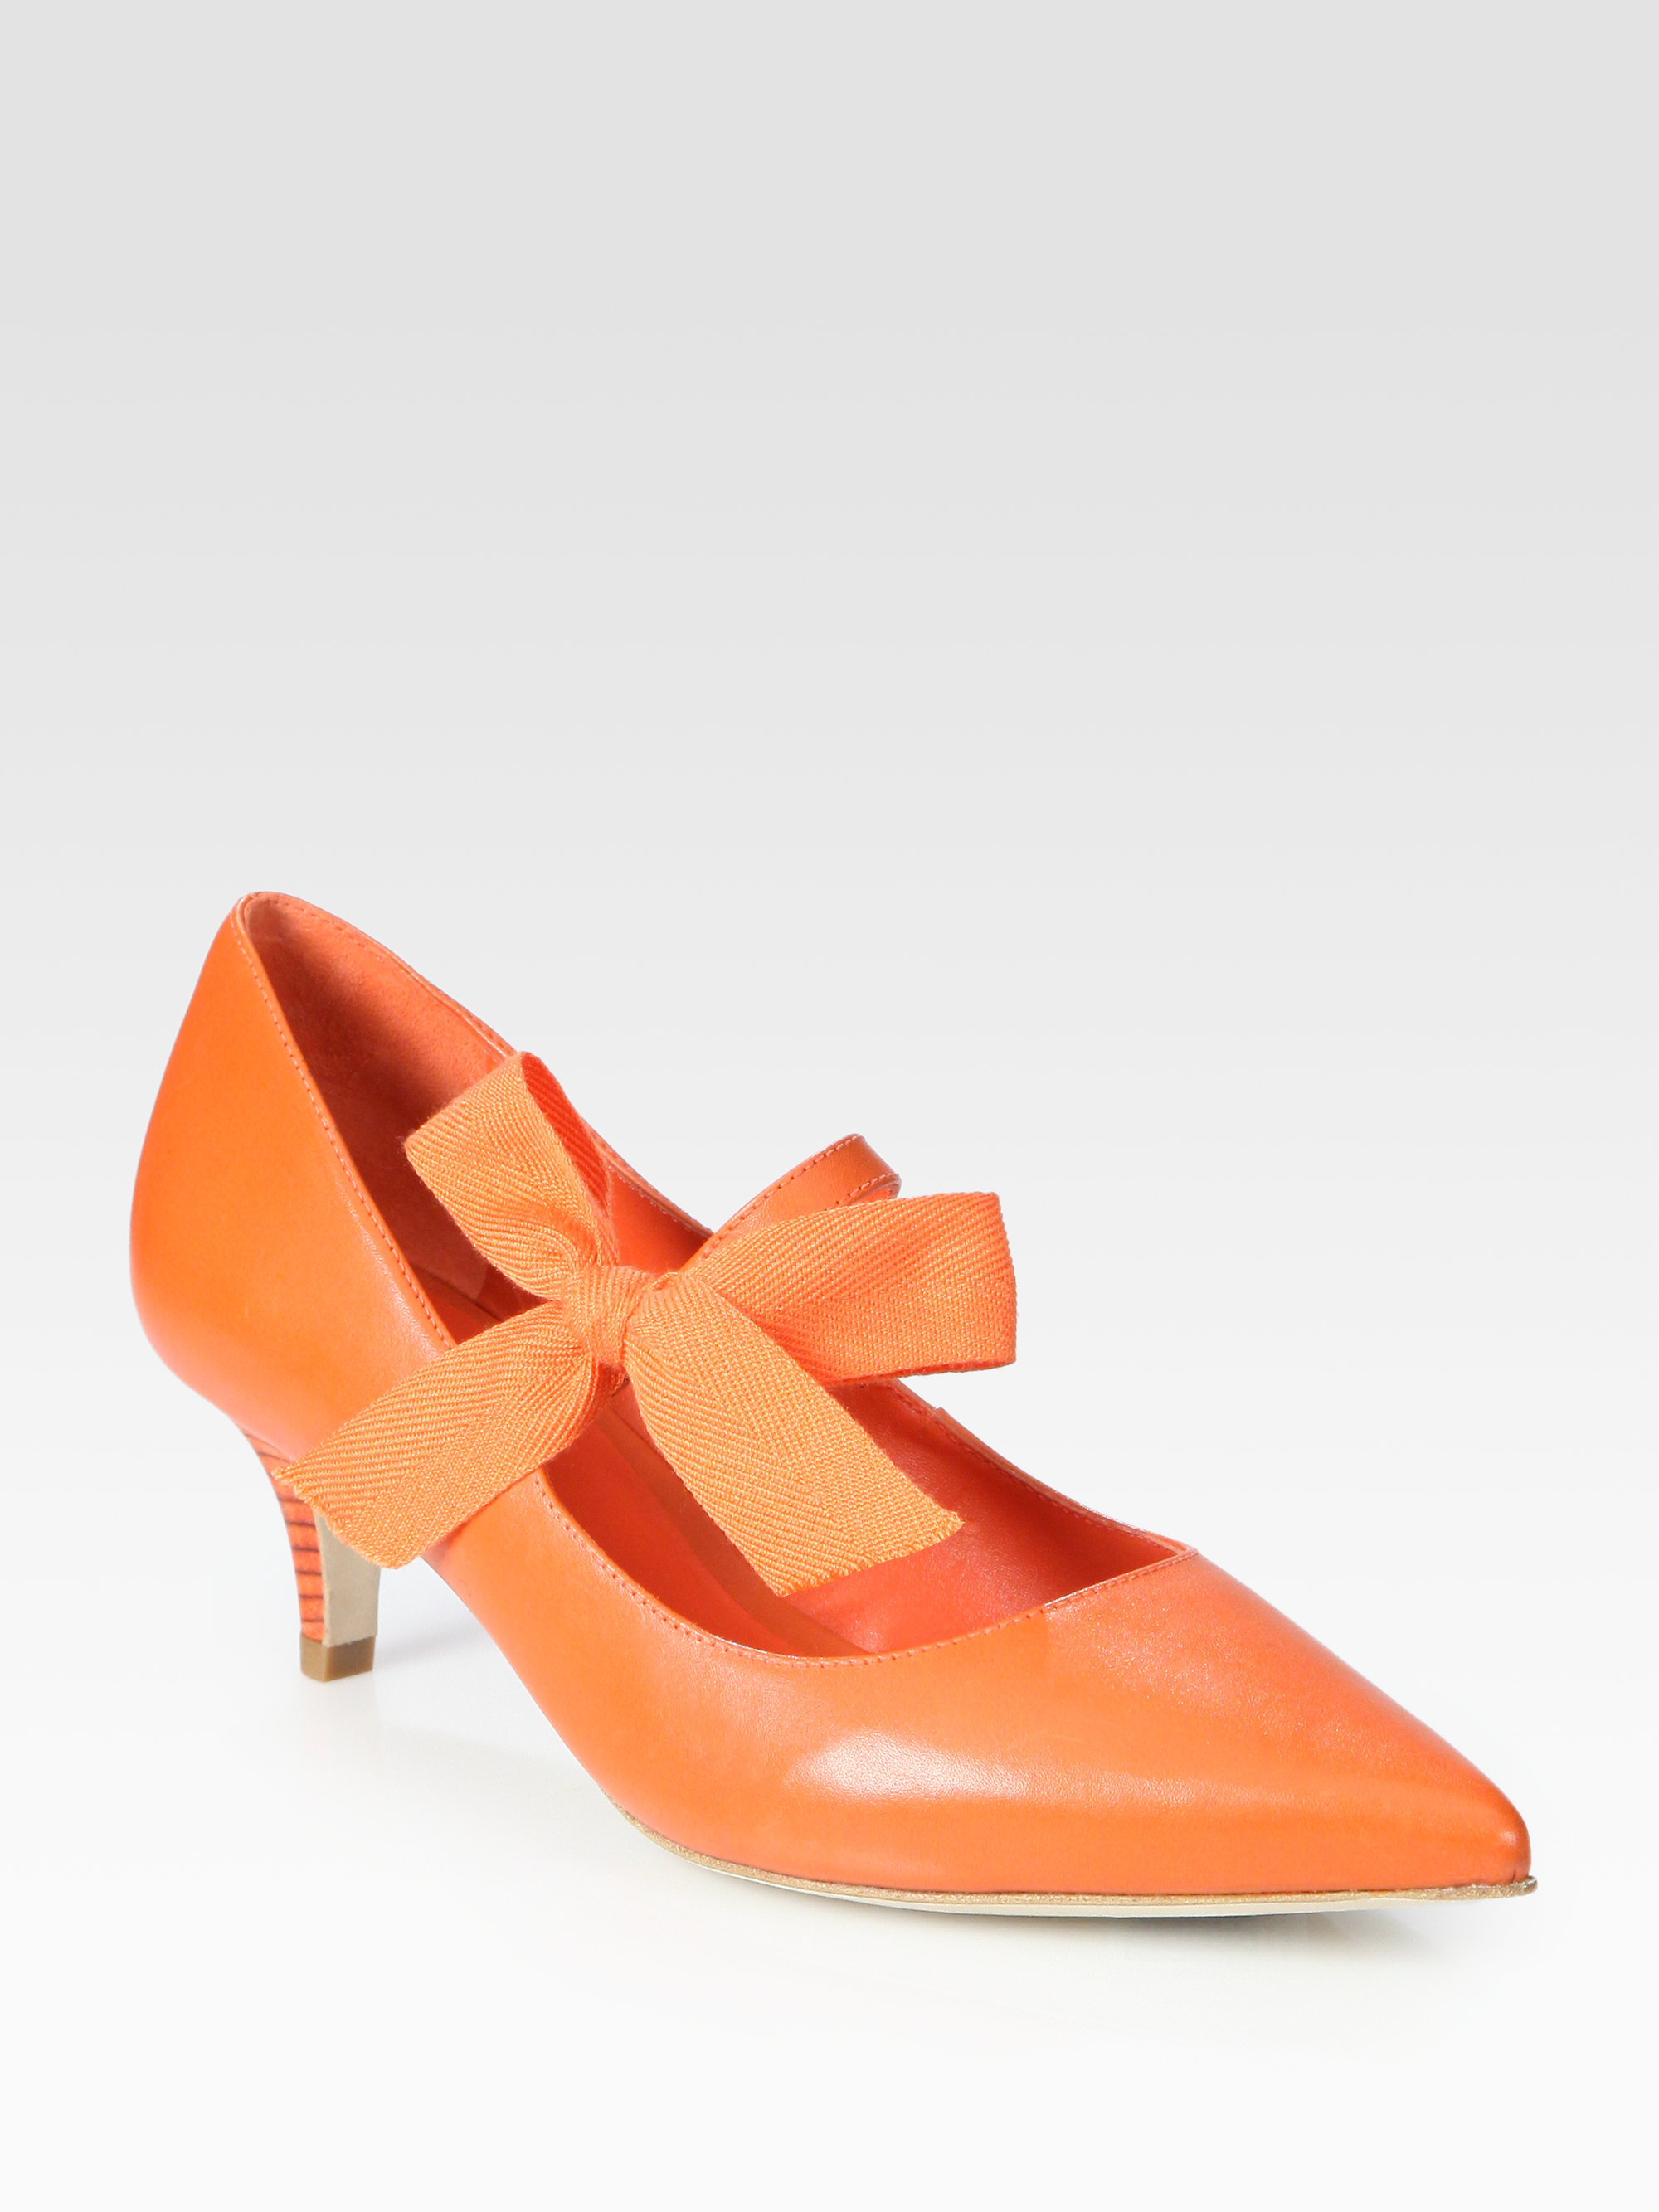 fast delivery online Tory Burch Beverly Pointed-Toe Pumps popular cheap price sale purchase sast sale online wholesale price online IQnefK8GH